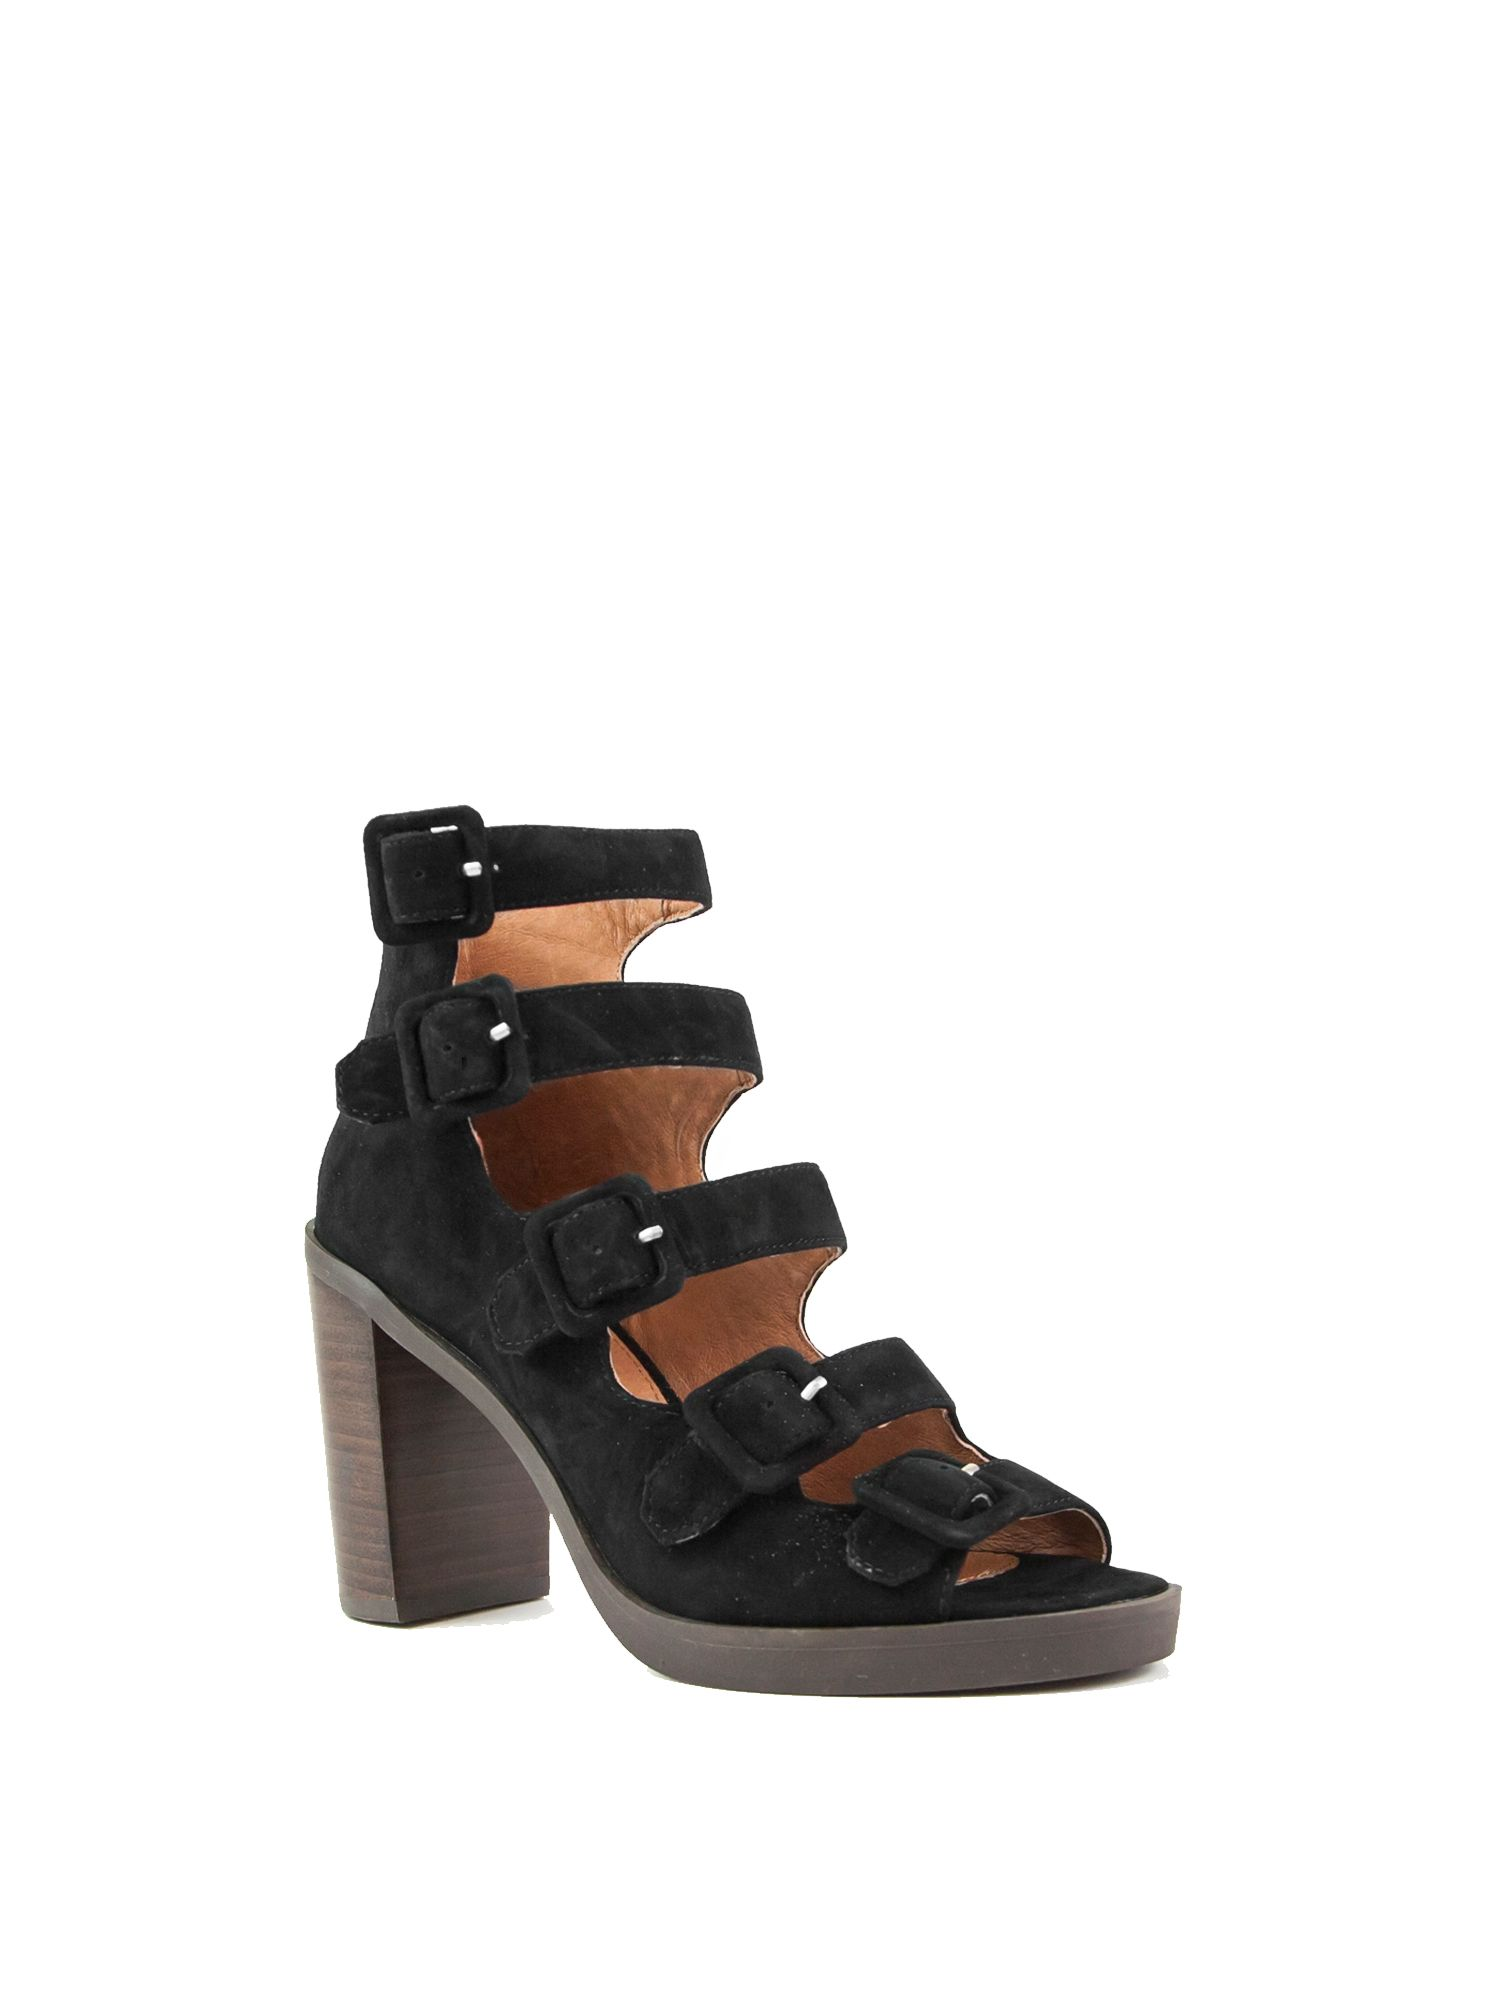 Shellys London Debden multi-strap chunky sandals, Black